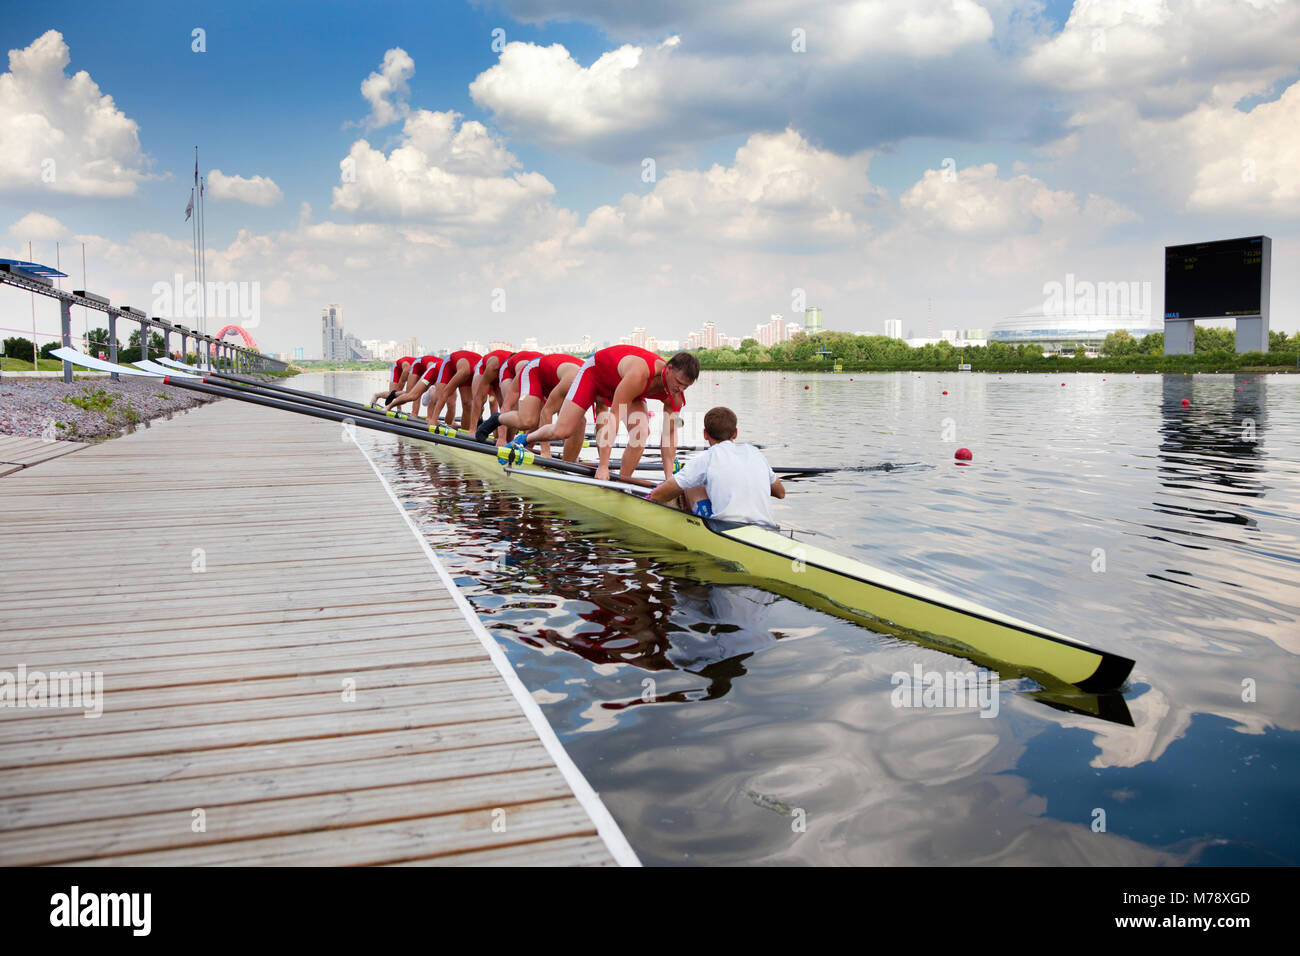 A competition 'The Great Moscow Regatta' on the Krylatskoe Rowing Canal in Moscow, Russia - Stock Image